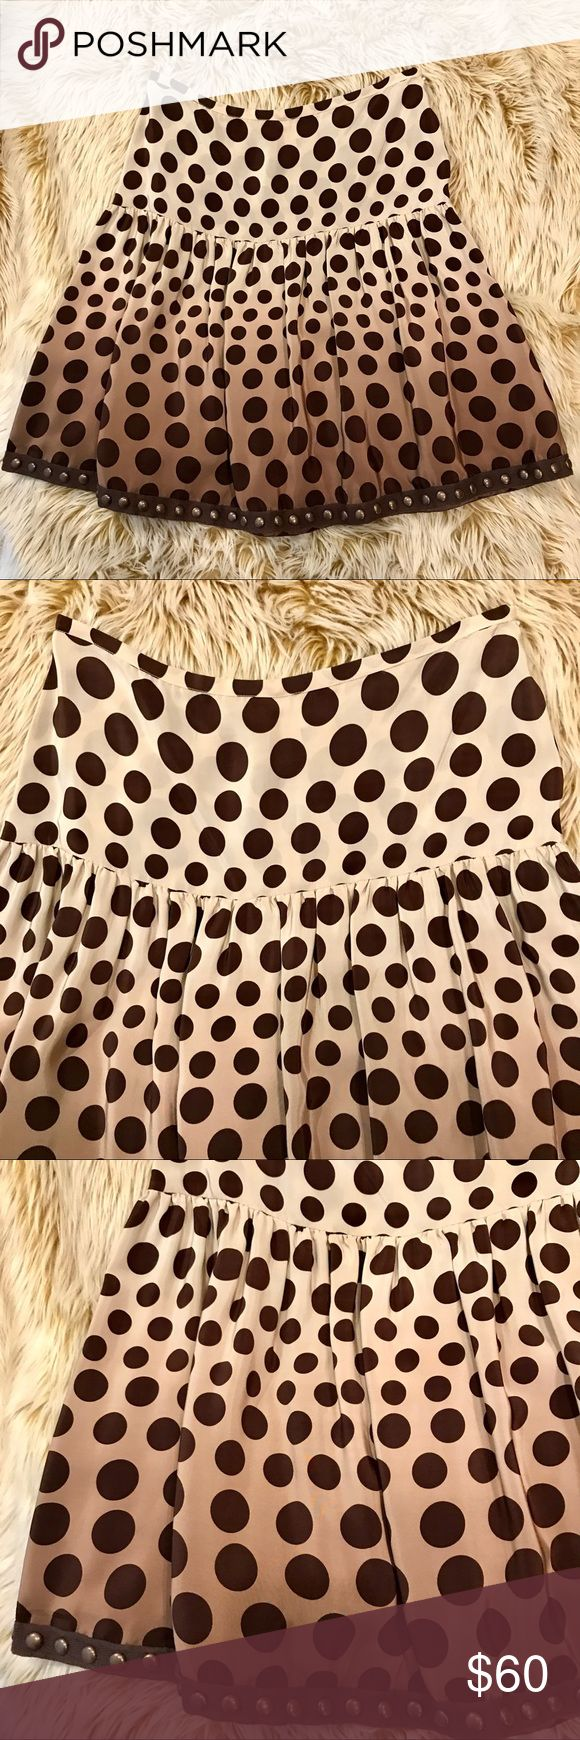 "Plenty Brand Ombré Vintage 100% silk skirt! EUC ❤️❤️EUC PLENTY brand mocha ombre polka dot yoked and gathered skirt! Purchased years ago in Manhattan and worn a few times! No flaws, excellent condition! Super flattering, fully lined, tacks on hem allow for movement and totally unique! Size 4. 100% silk. Measured laying flat: waist 14.5"", overall length 20.5"", length below yoke 18"", waist to yoke 6.75"". Happy Poshing and please ask any questions!!❤️❤️ Plenty Skirts A-Line or Full"